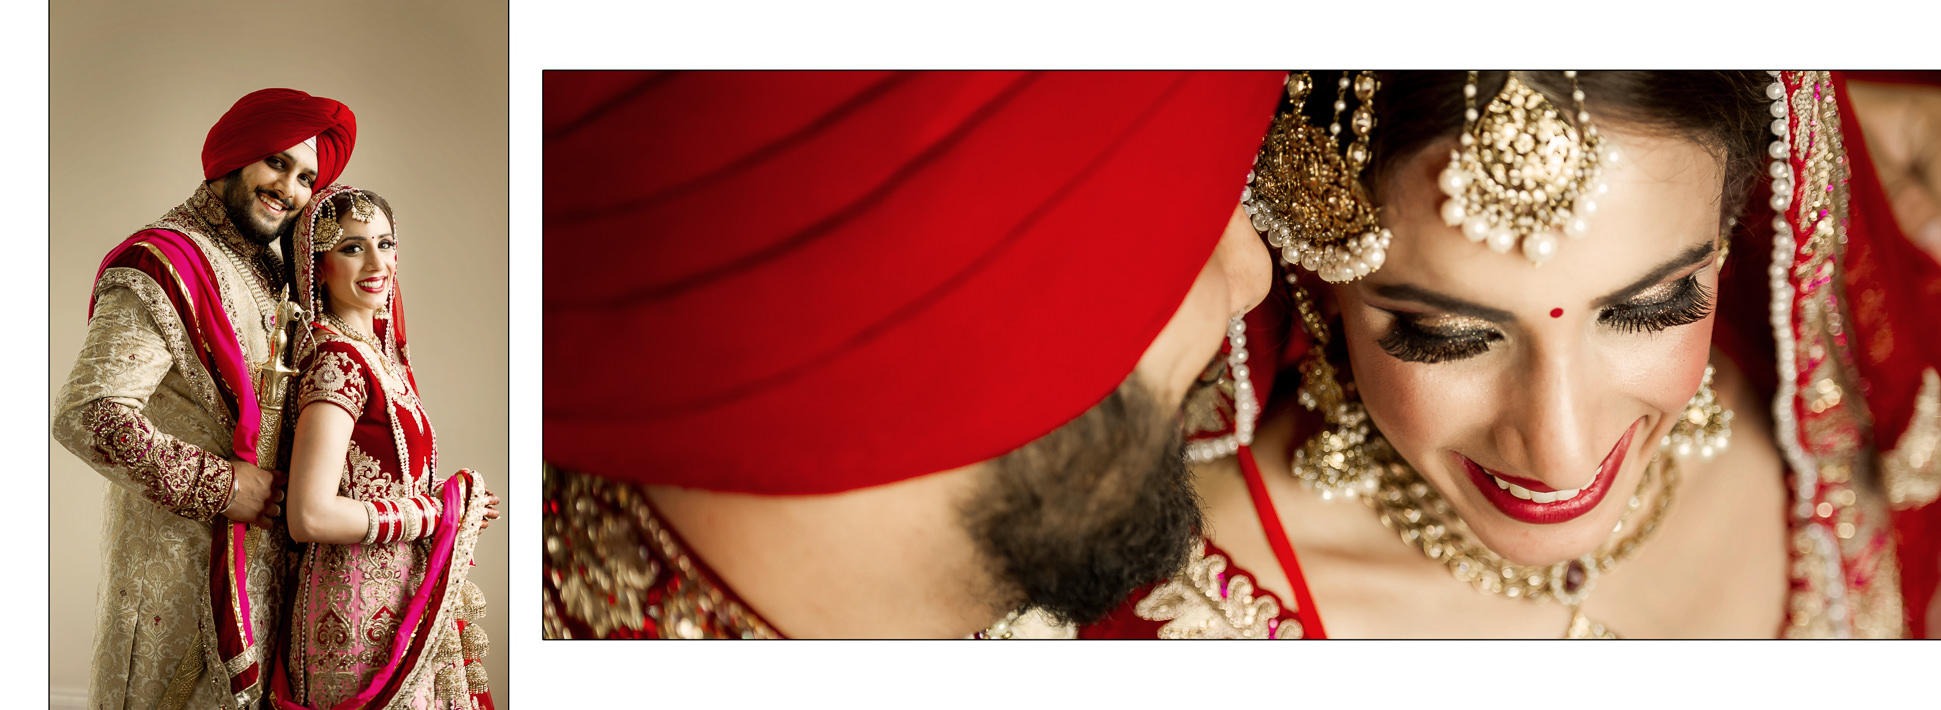 indian-wedding-photographer-sikh-29-of-43